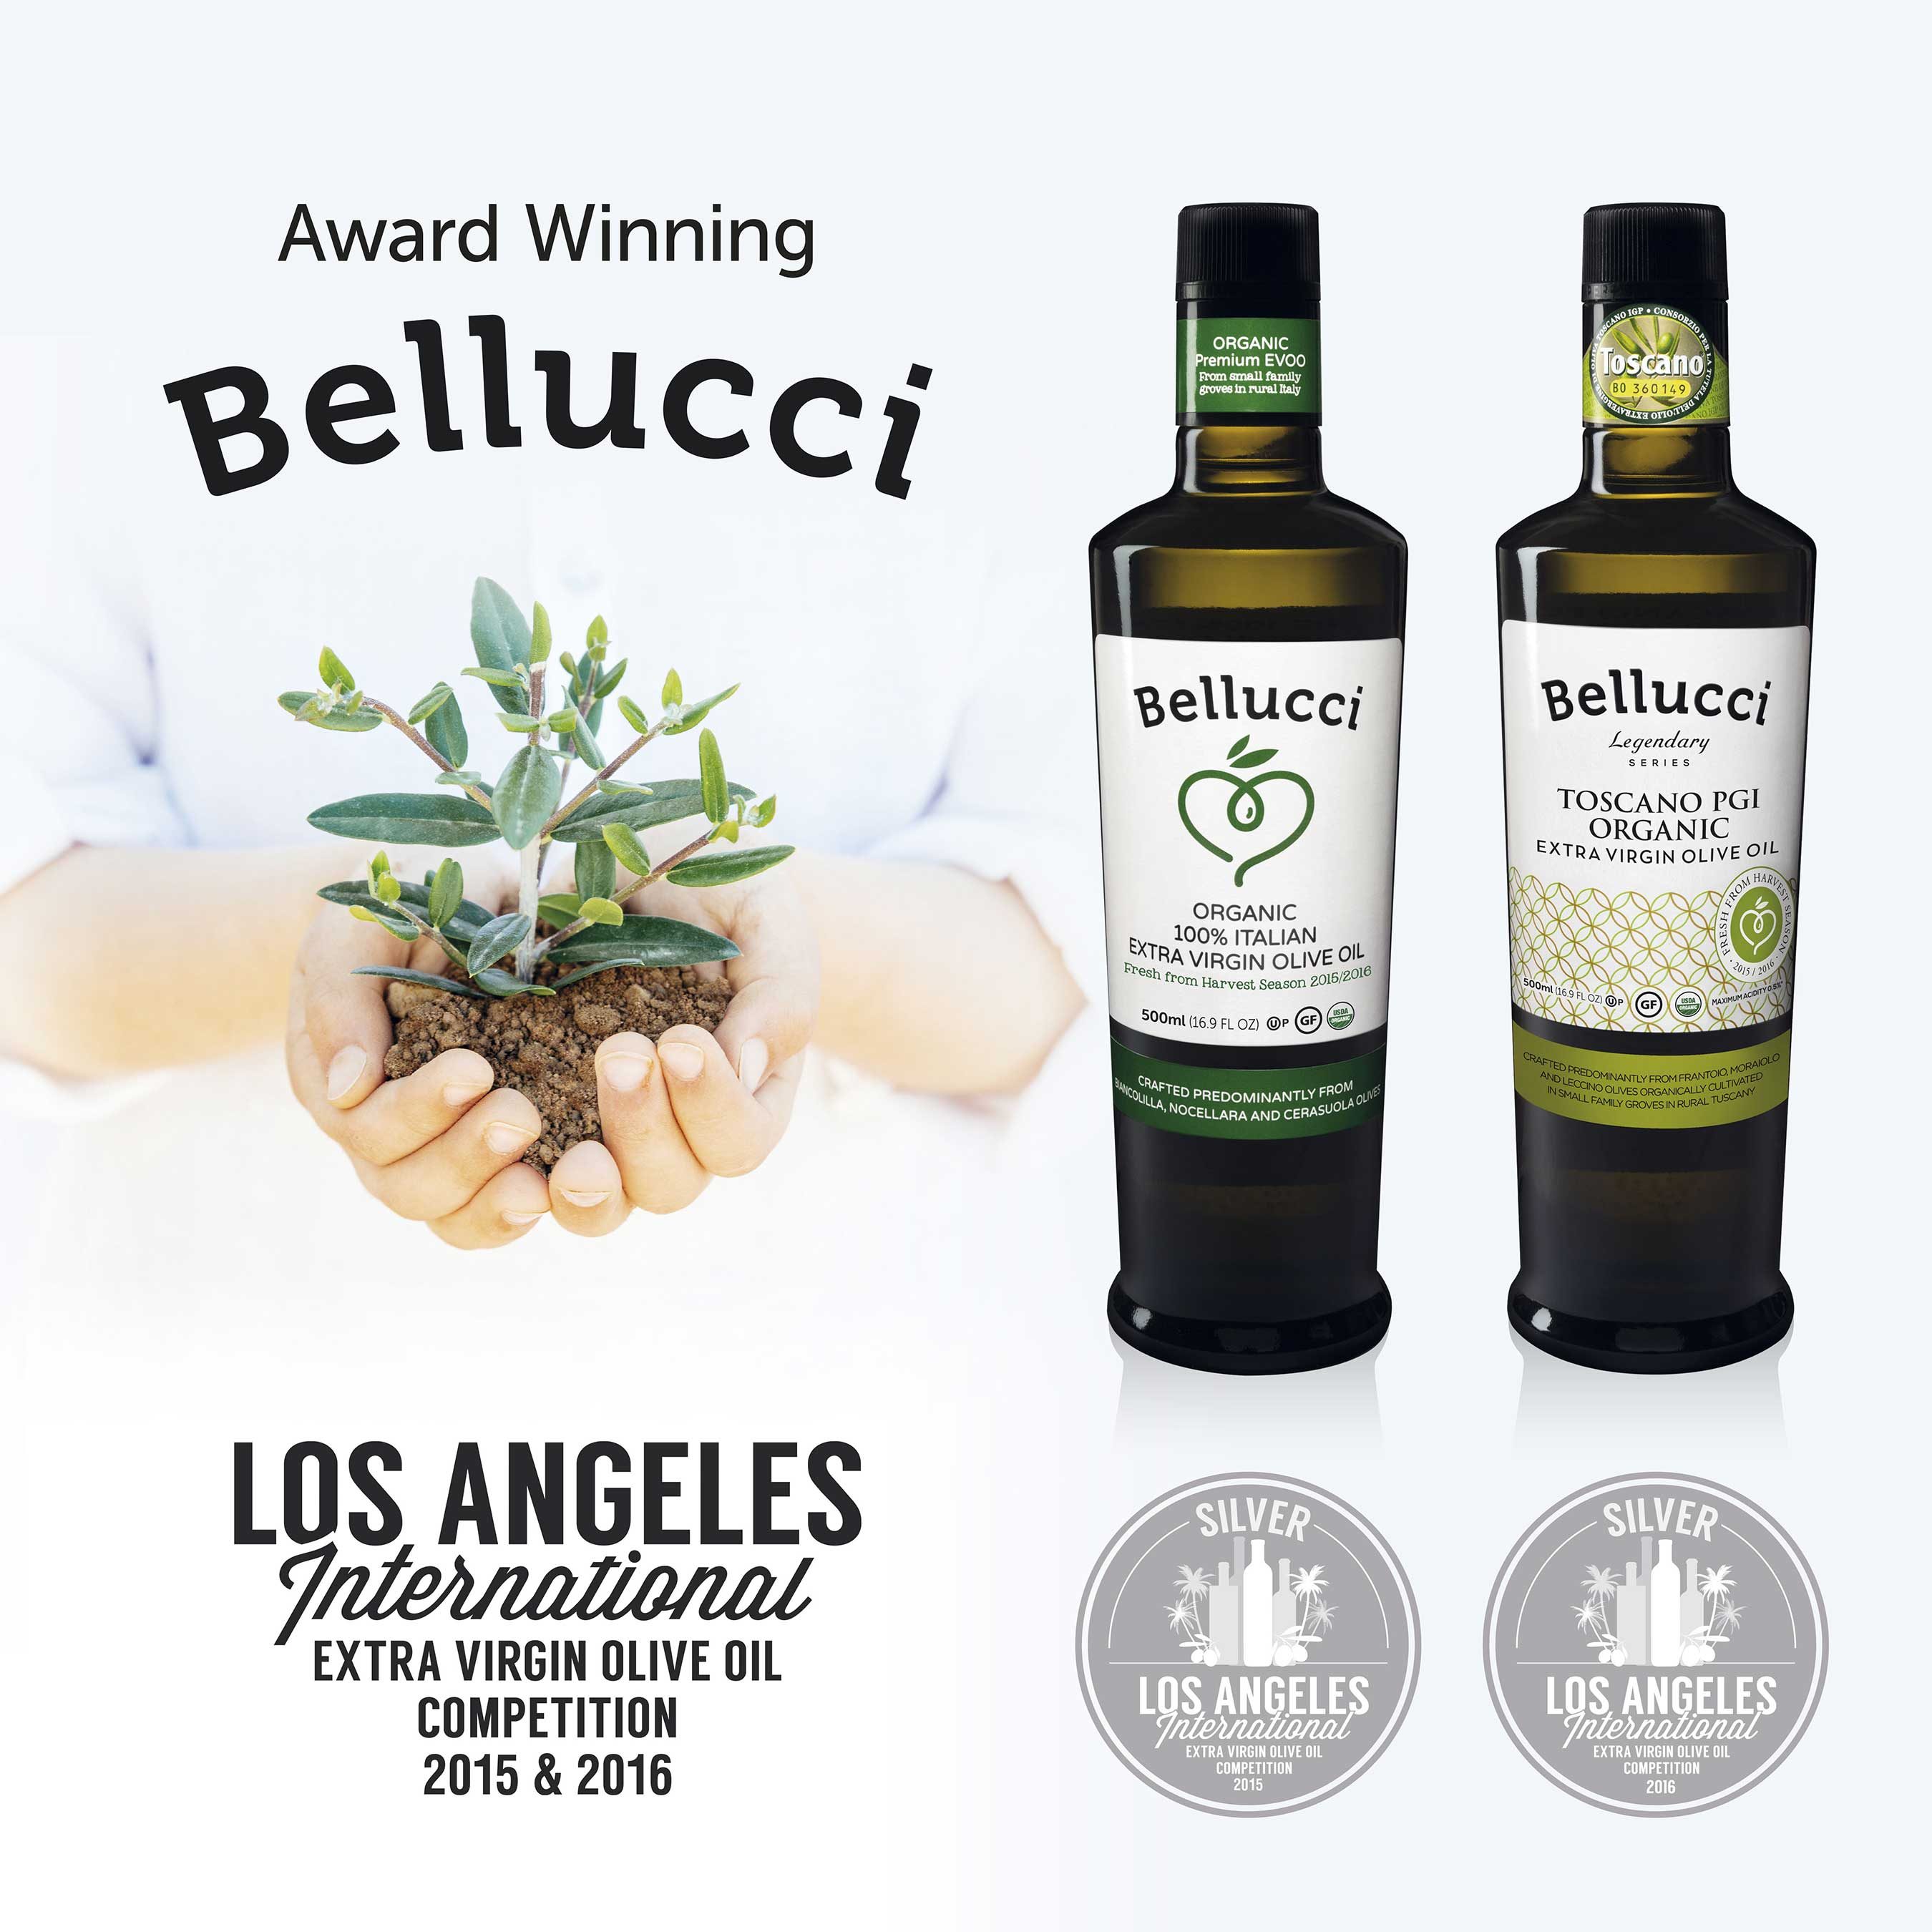 Bellucci wins the Silver Medal from the LAIOOC two years in a row with organic EVOO.